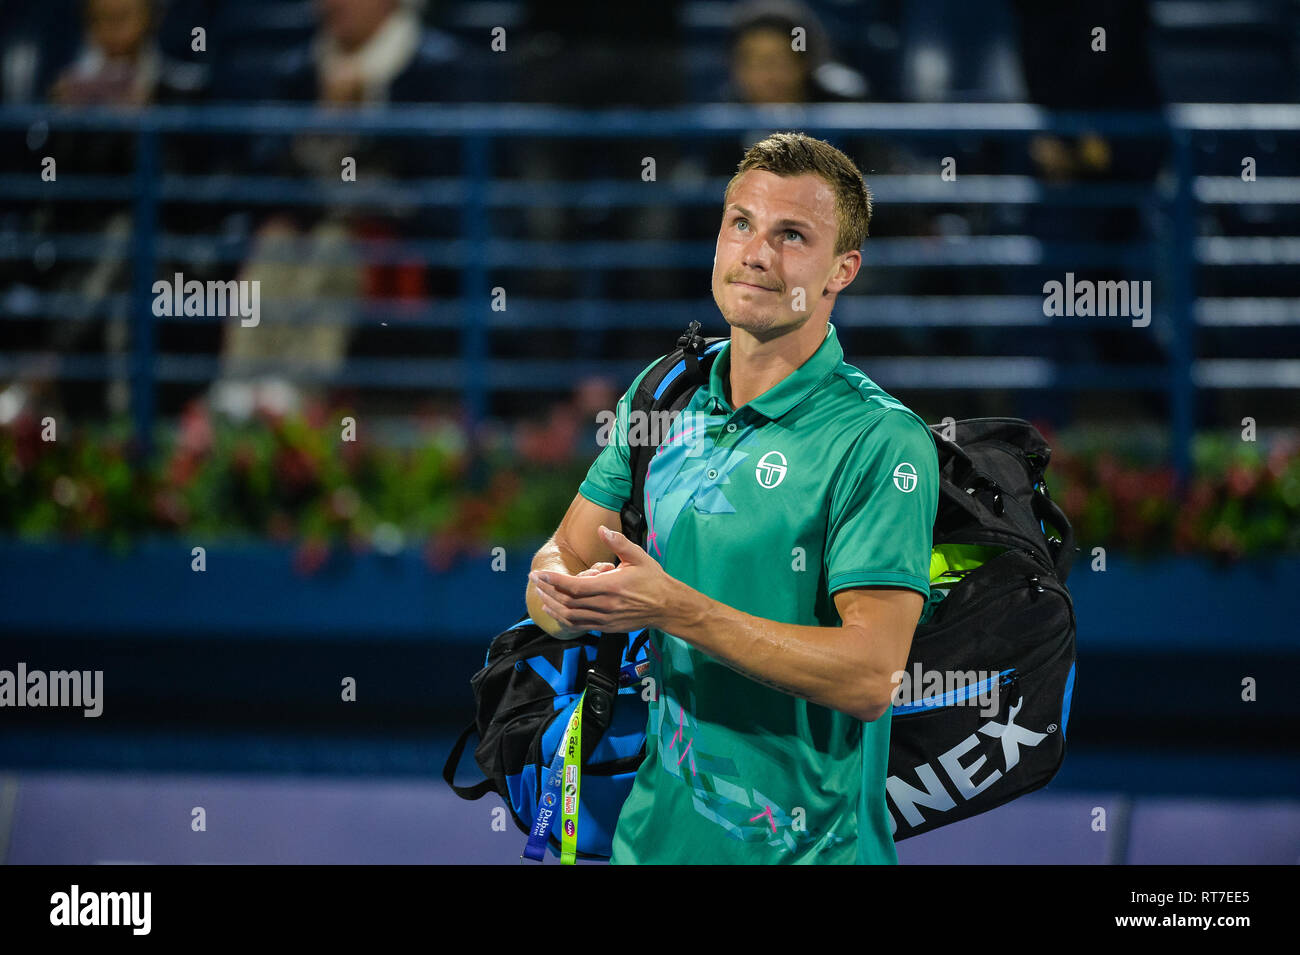 Dubai, UAE. 28th February 2019. Hungarian Marton Fucsovics acknowledges the crowd after losing to former World no. 1 Roger Federer of Switzerland§ in the quarter finals of the 2019 Dubai Duty Free Tennis Championships. Fucsovics lost 6-7 (6-8), 4-6 Credit: Feroz Khan/Alamy Live News - Stock Image